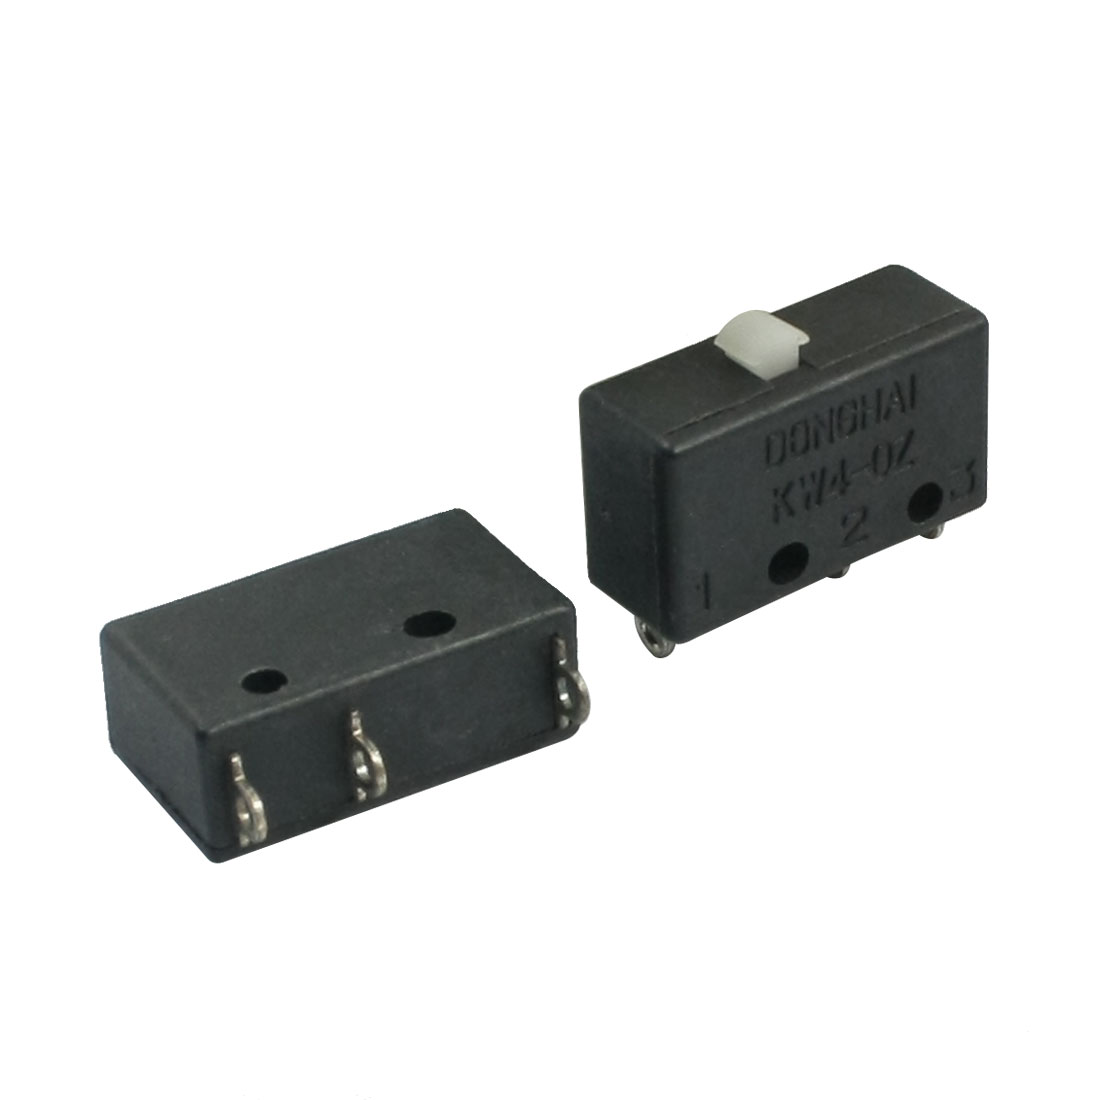 2 Pcs AC125V 3A SPDT 1NO 1NC 3-Pin Memontary Action Black Rectangle Pushbutton Micro Limit Switch